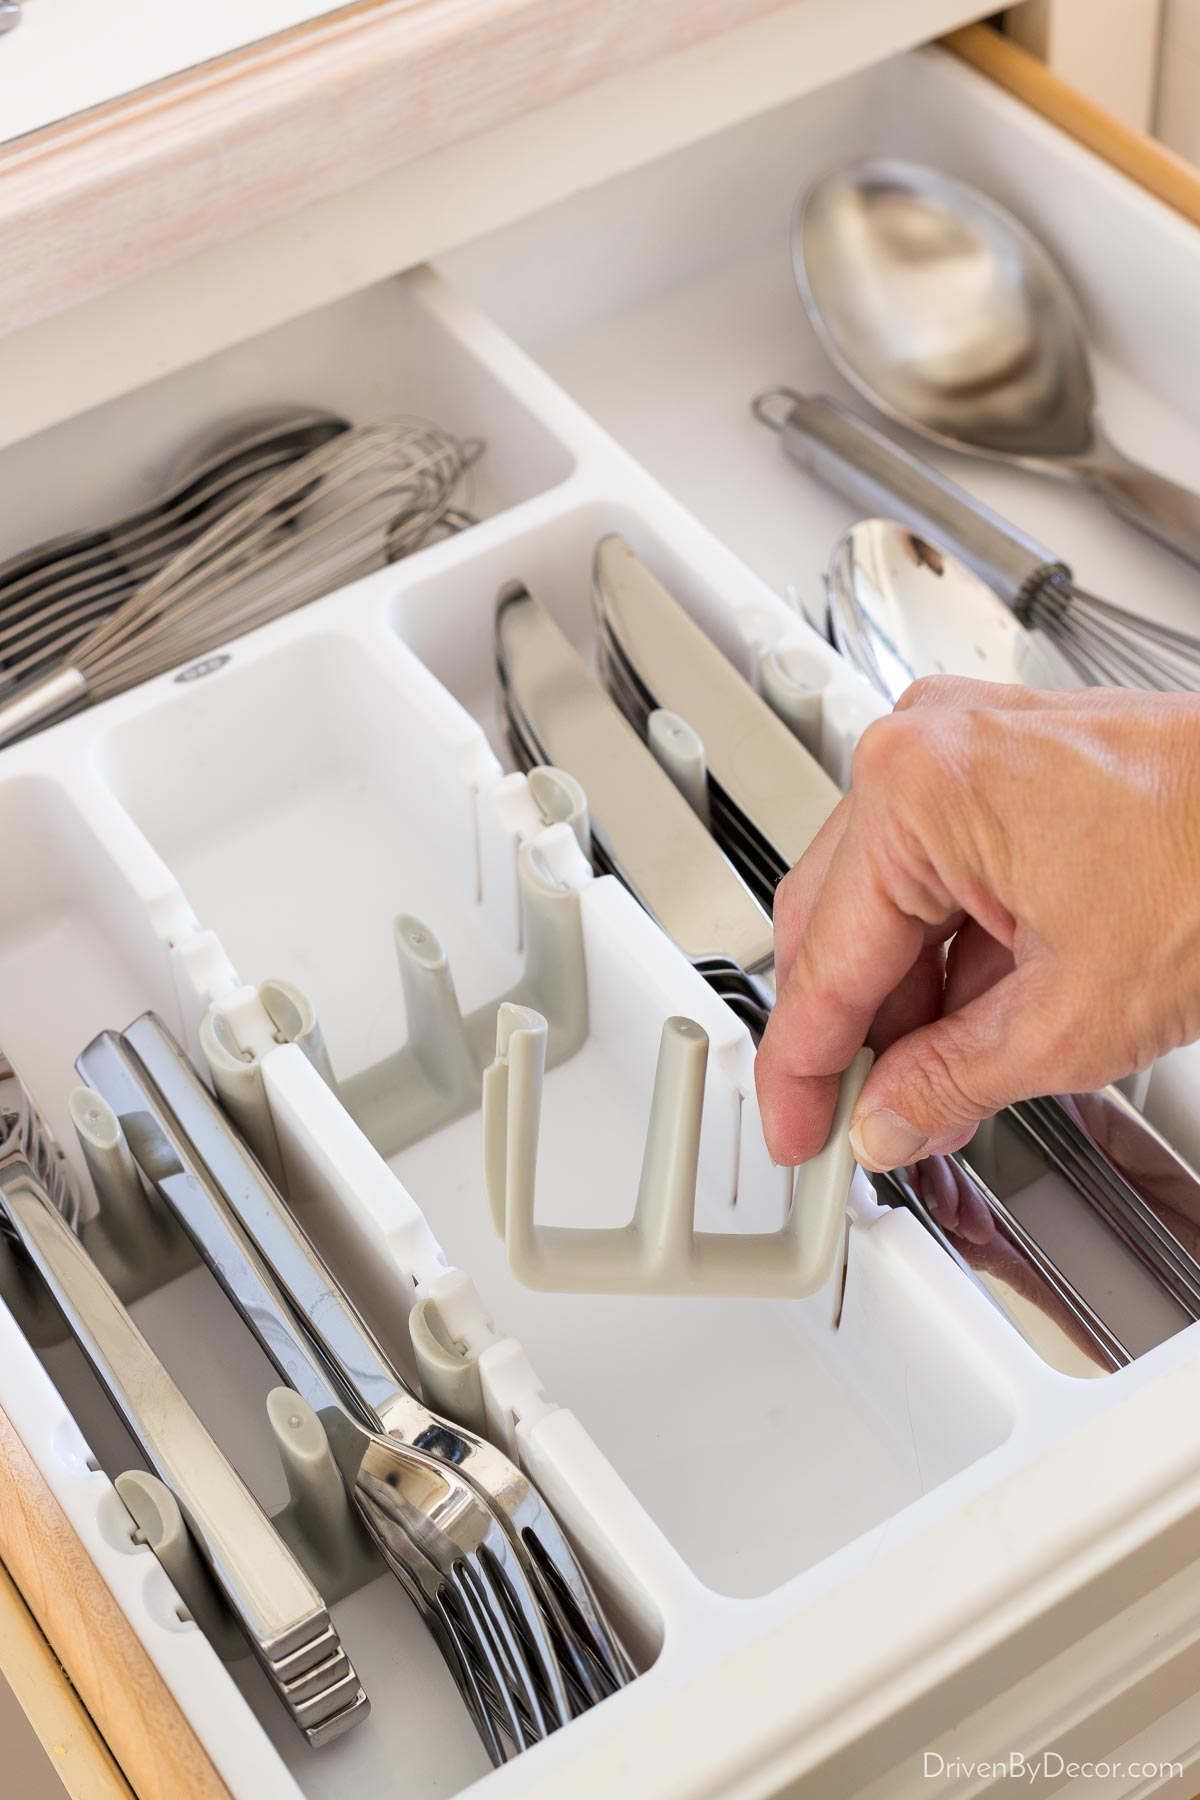 Love that you can move the dividers in this kitchen drawer silverware organizer!